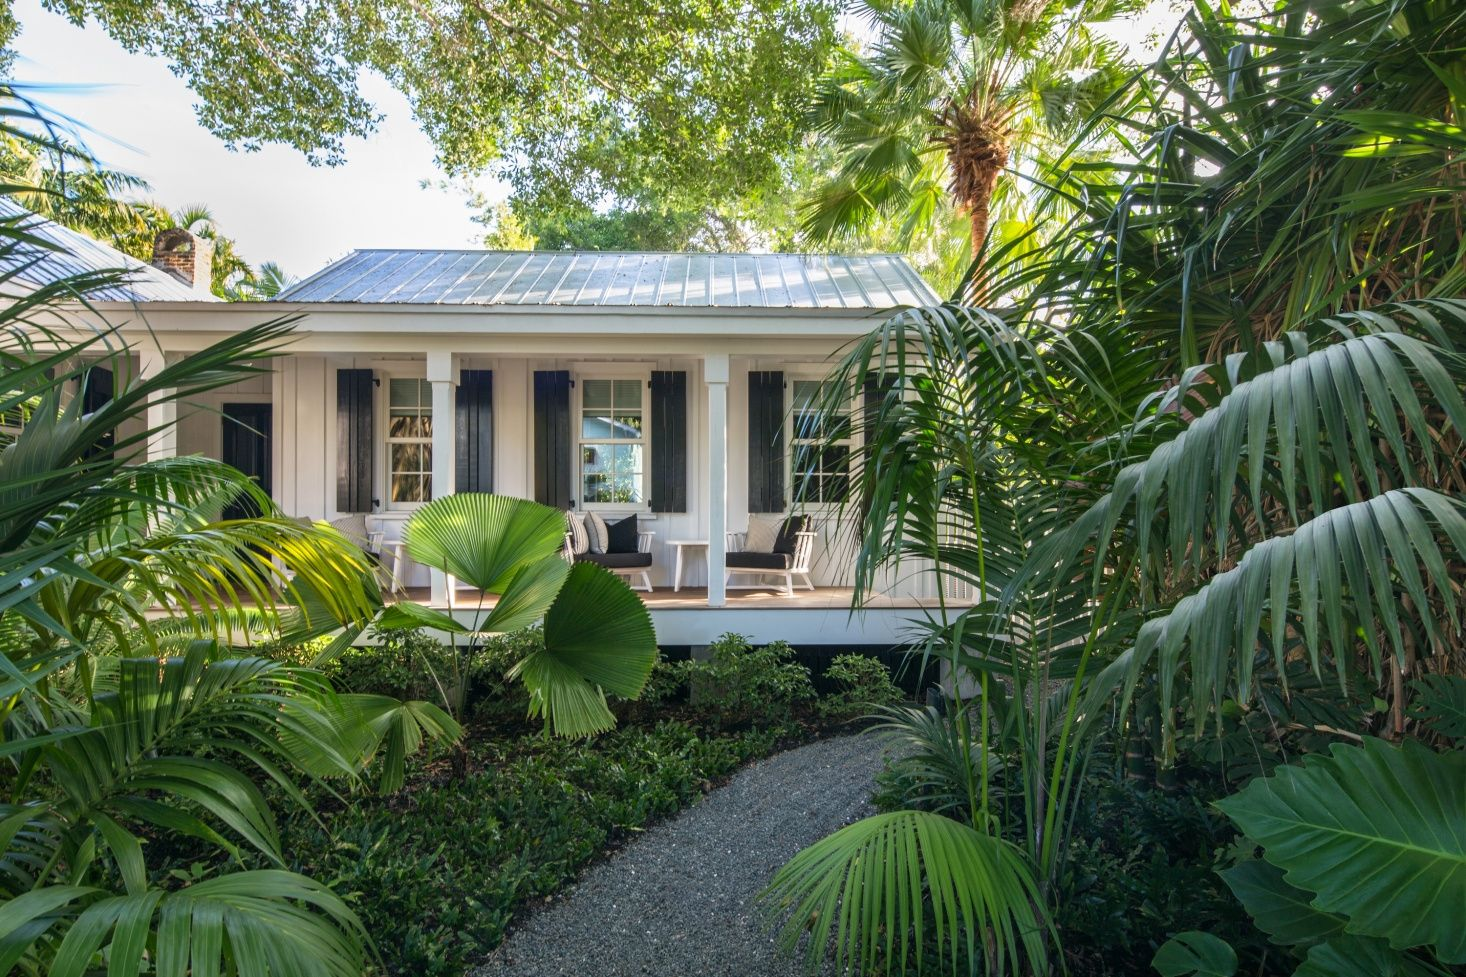 Key West Landscape Architecture How To Design A Tropical Garden In South Florida Key West Landscaping Florida Landscaping Modern Landscape Design